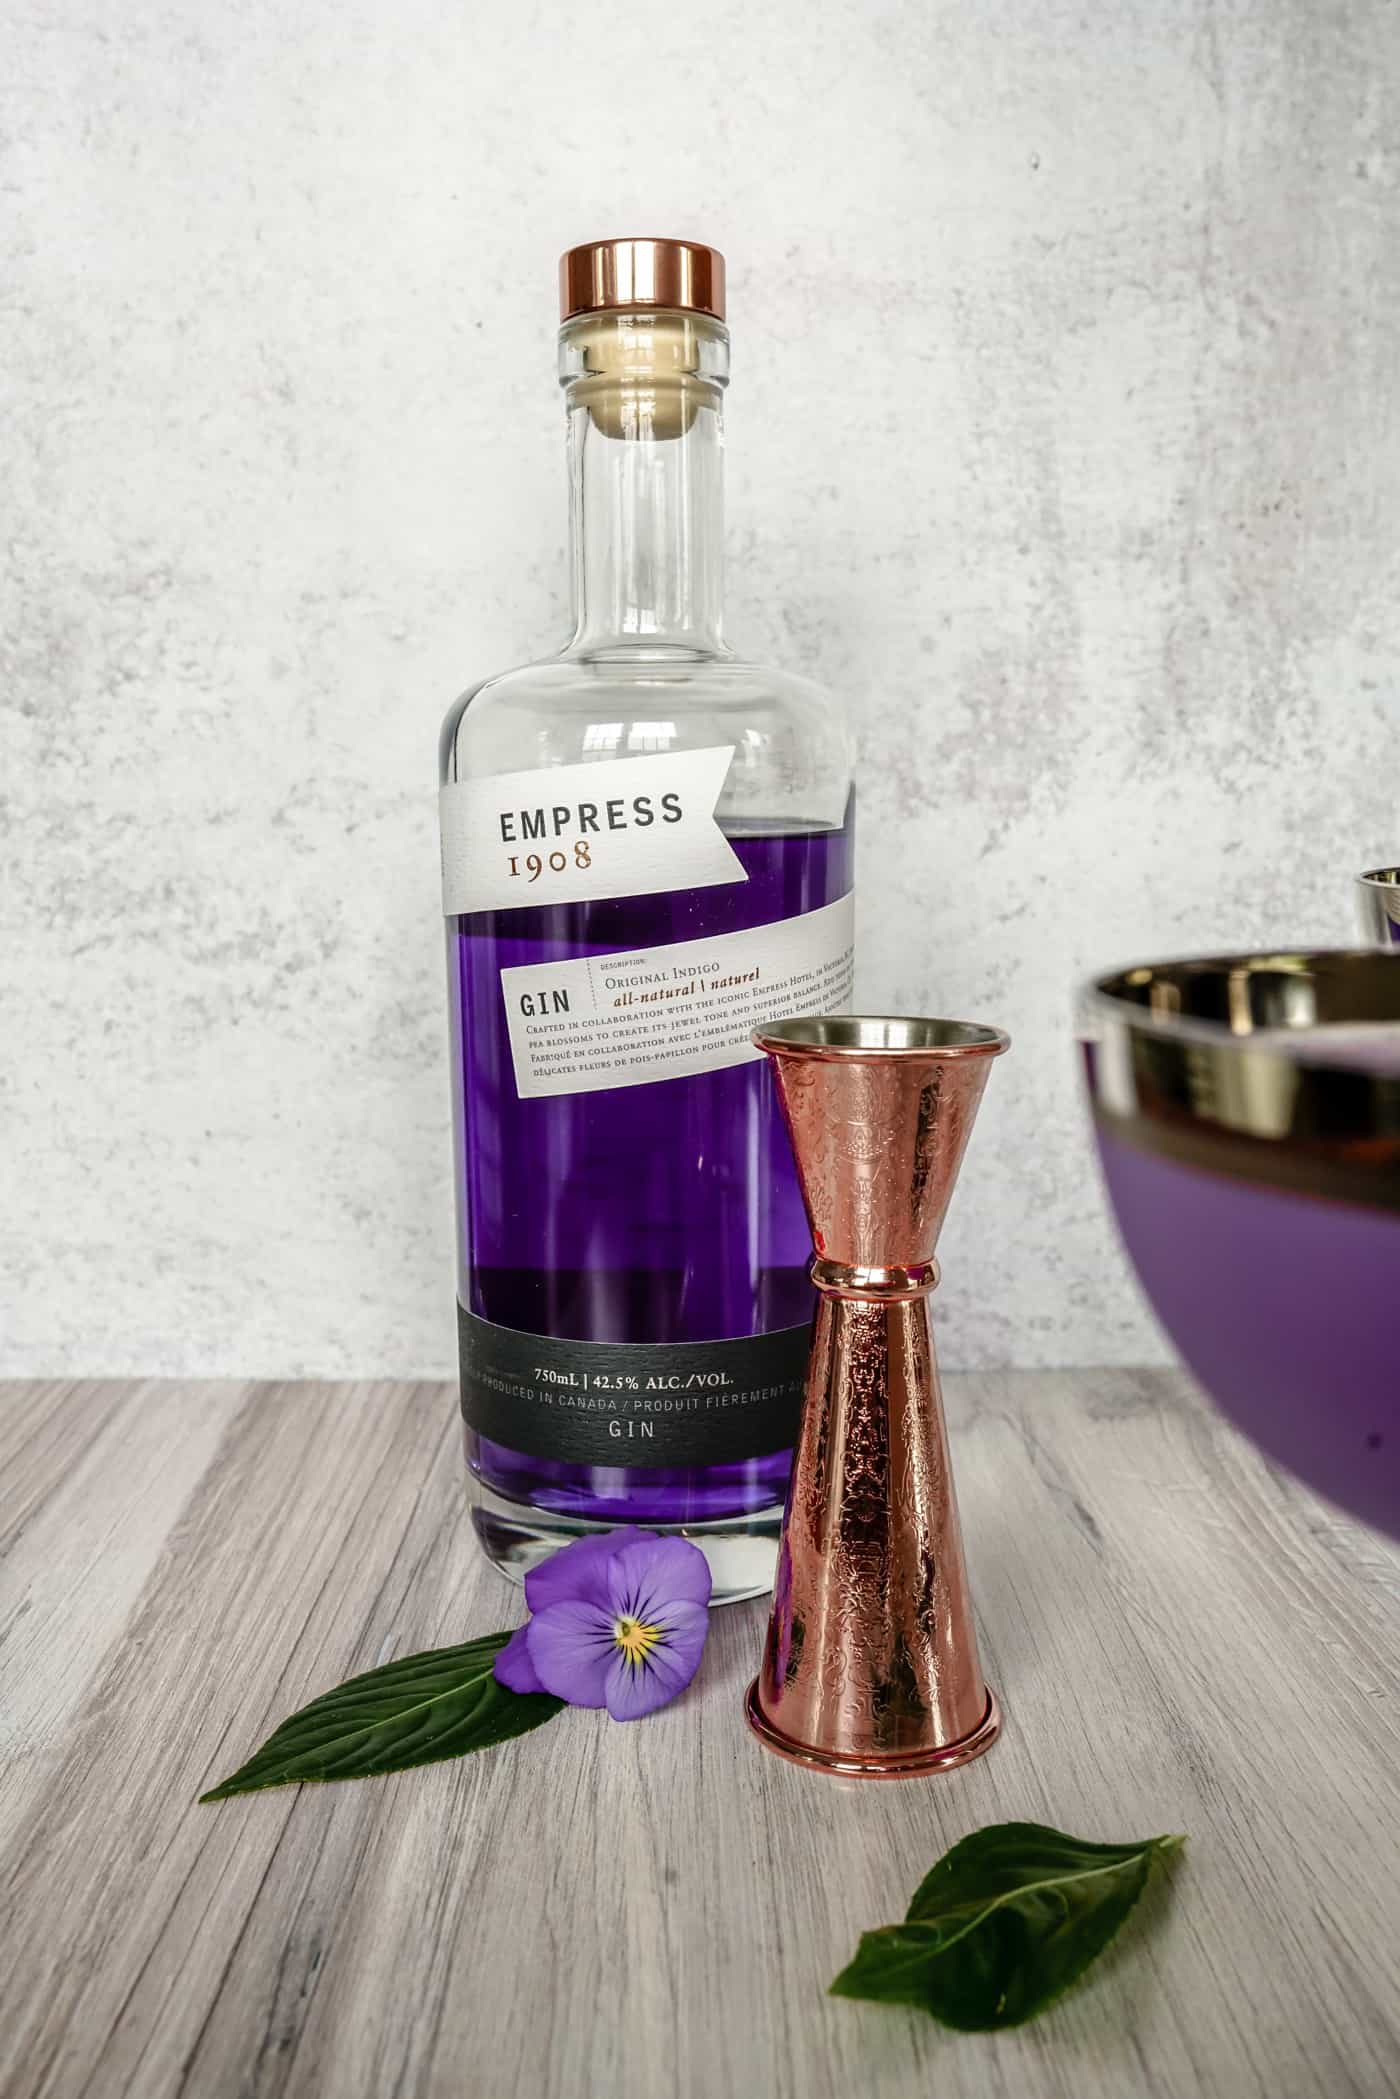 EMPRESS 1908 GIN COCKTAIL Looking for a delicious gin cocktail recipe? We have you covered with this beautiful Q1908 cocktails made with Empress Gin. This recipe is a refreshing summer cocktail that is easy to make with Spanish style gin. Make this Empress 1908 Gin cocktail today and let us know what you think! #ginandtonic #gincocktail #summercocktail #empressgin